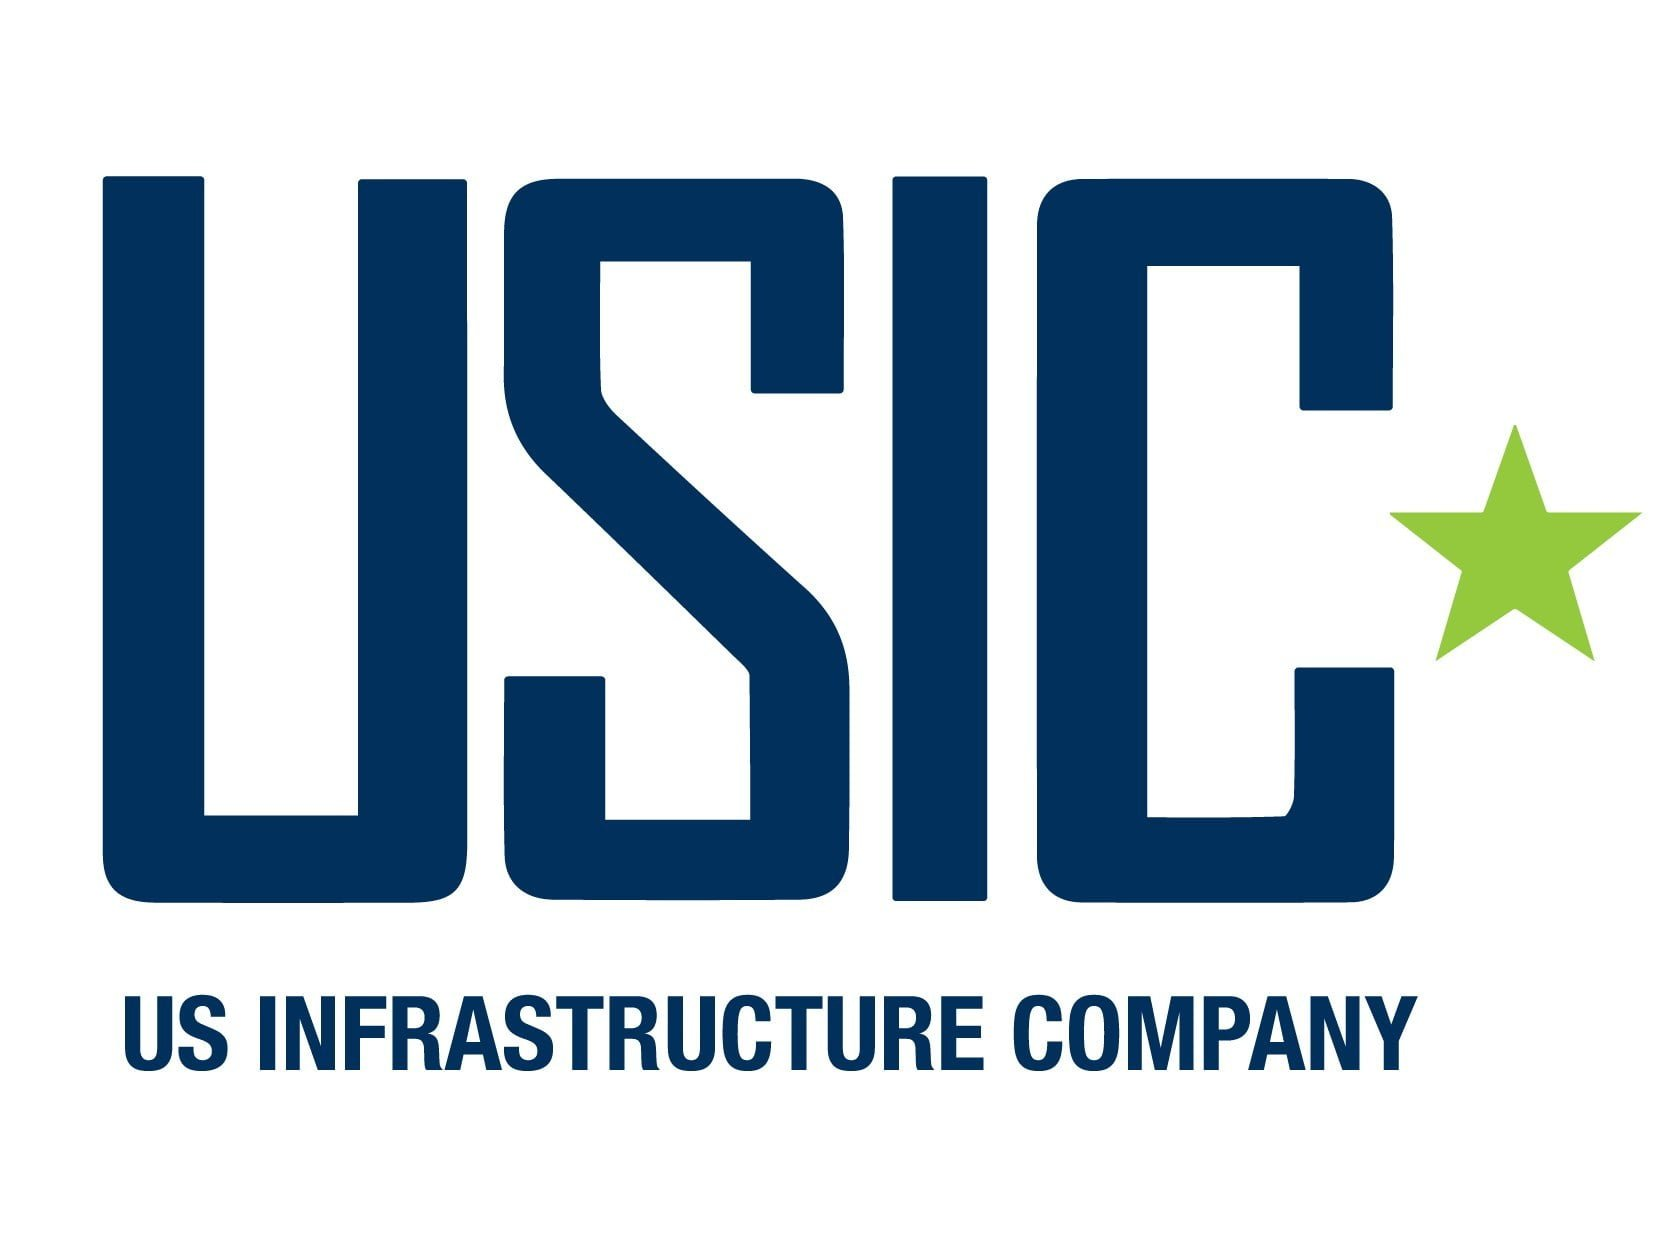 US Infrastructure Company